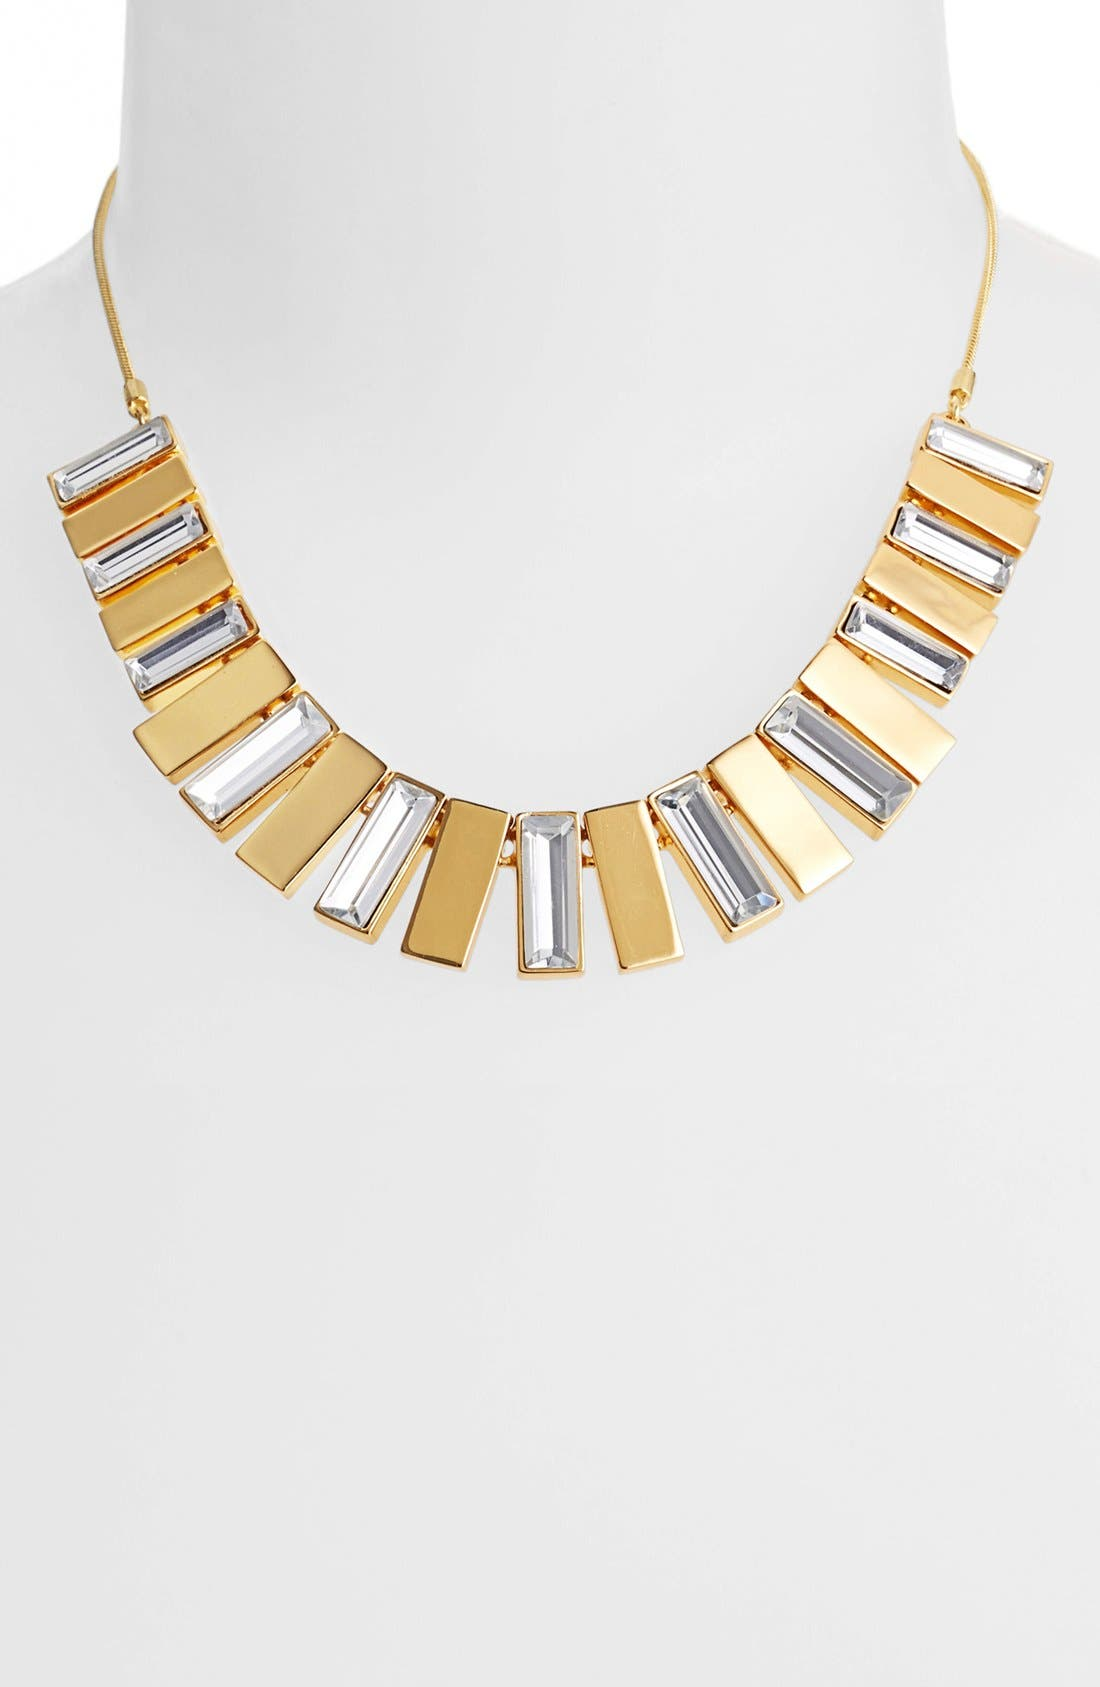 Main Image - Vince Camuto 'Crystal Clear' Baguette Crystal Bib Necklace